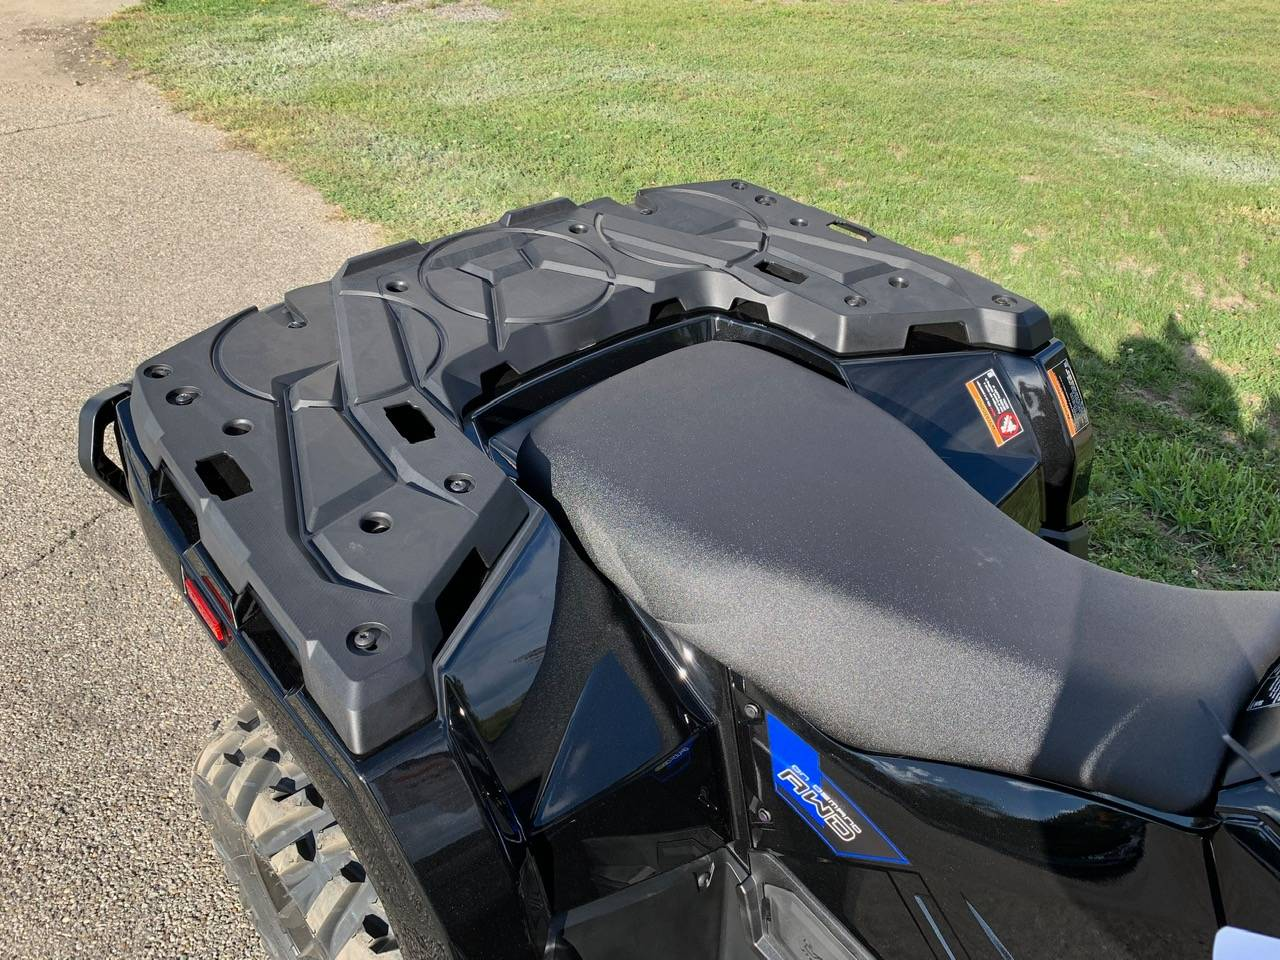 2021 Polaris Sportsman 570 Trail in Brilliant, Ohio - Photo 20